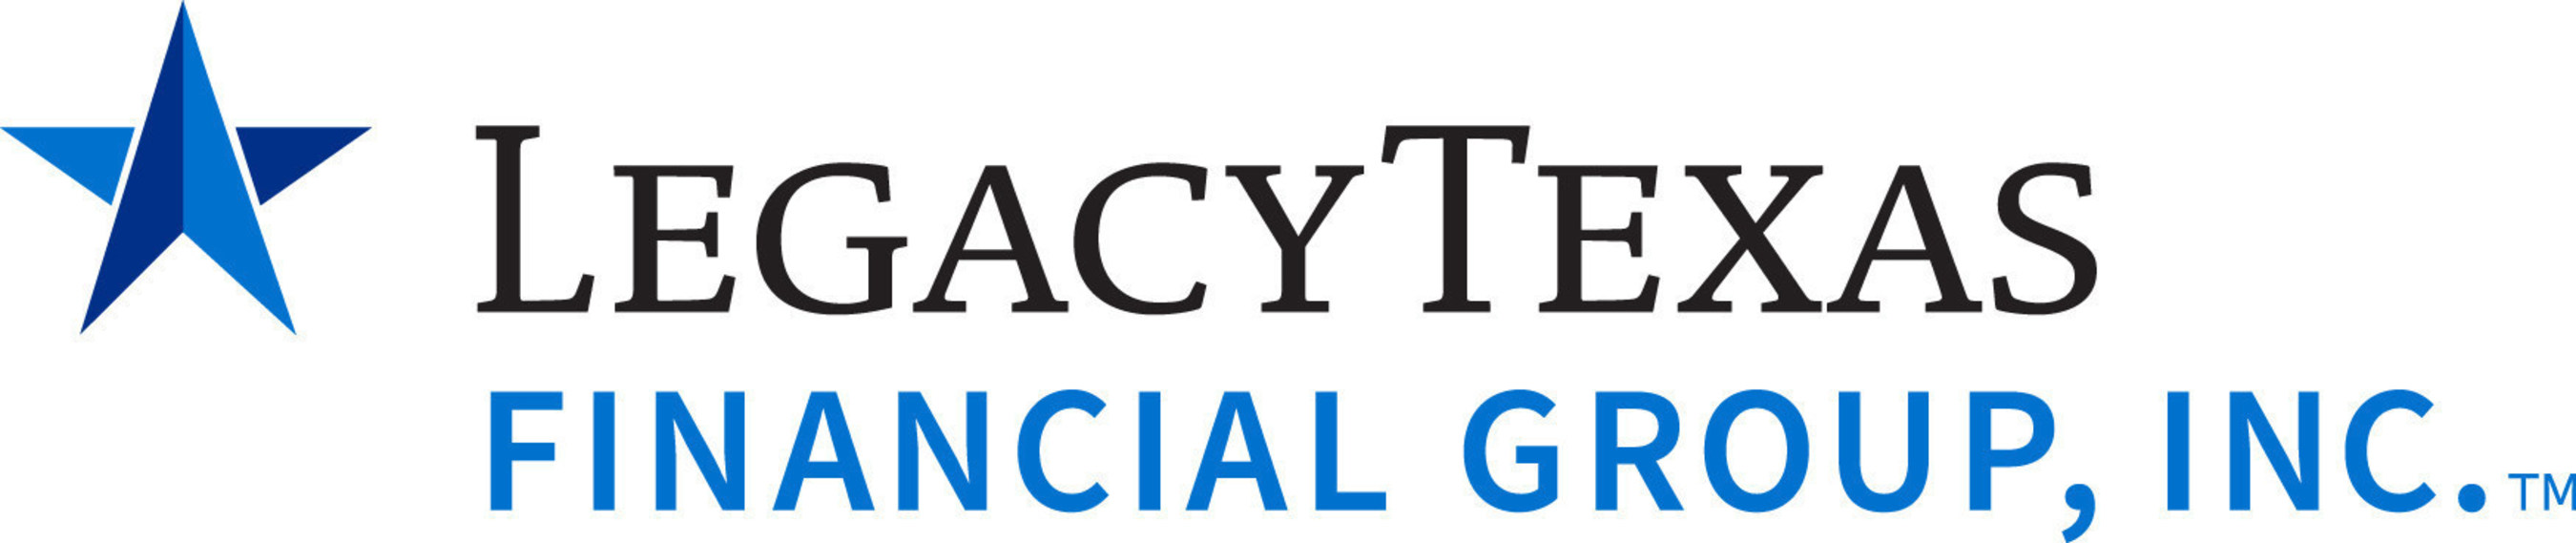 LegacyTexas Financial Group, Inc. is the holding company for LegacyTexas Bank, a commercially oriented ...